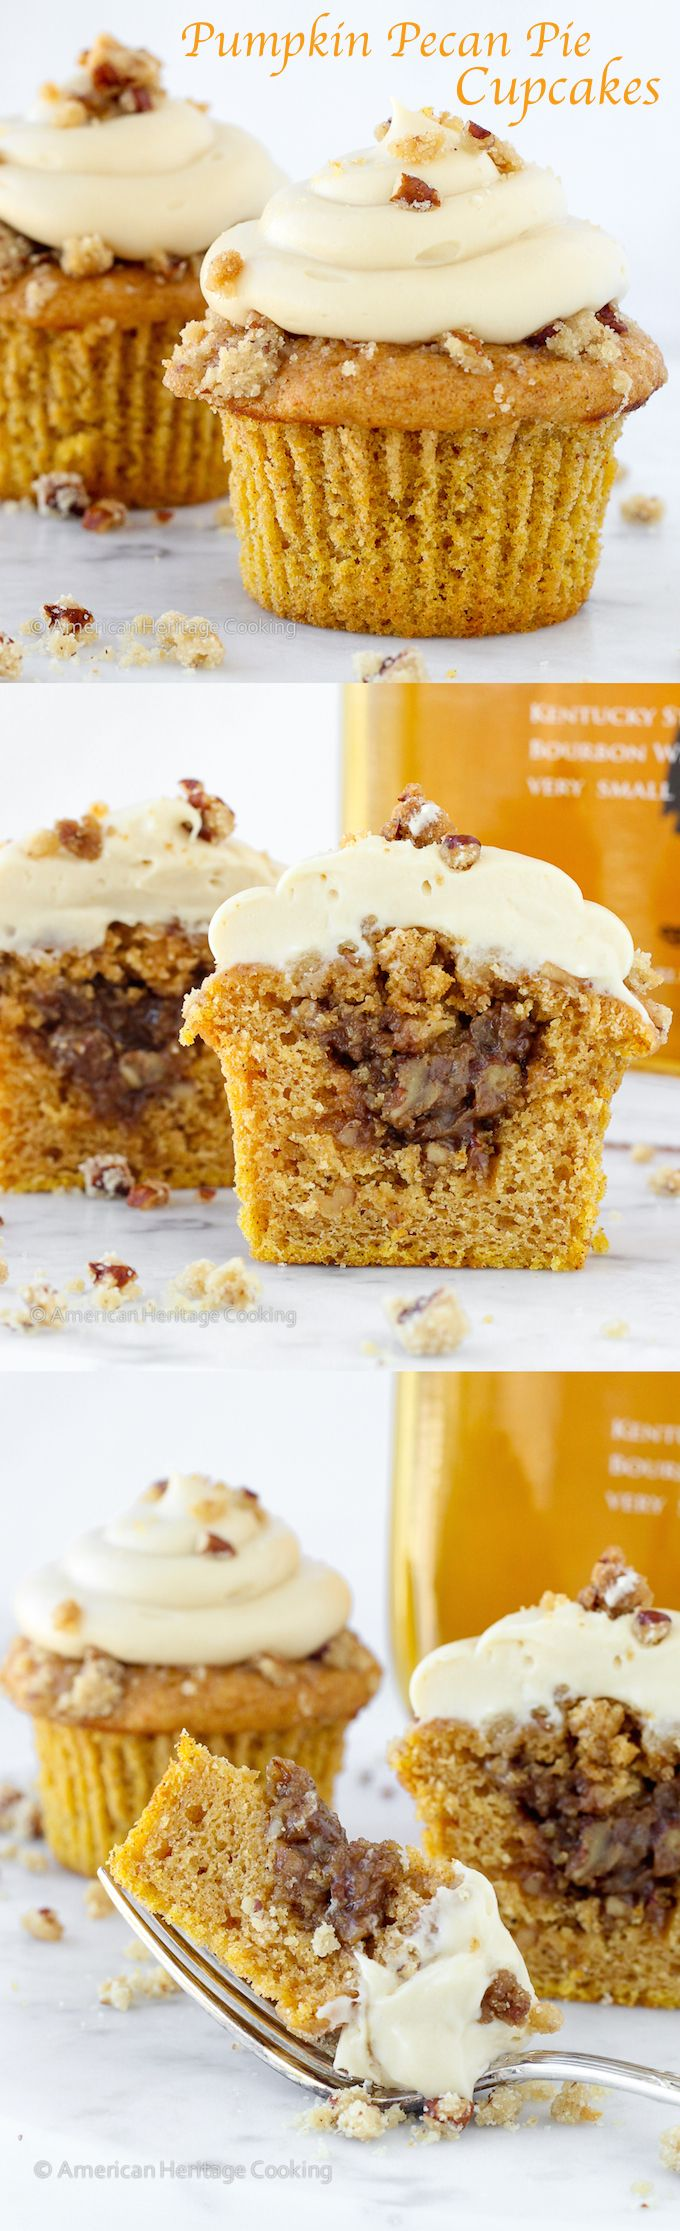 Pumpkin Pecan Pie Cupcakes with a Bourbon Brown Sugar Frosting | Spiced pumpkin cupcakes filled with pecan pie filling topped with bourbon brown sugar frosting!!! ~American Heritage Cooking